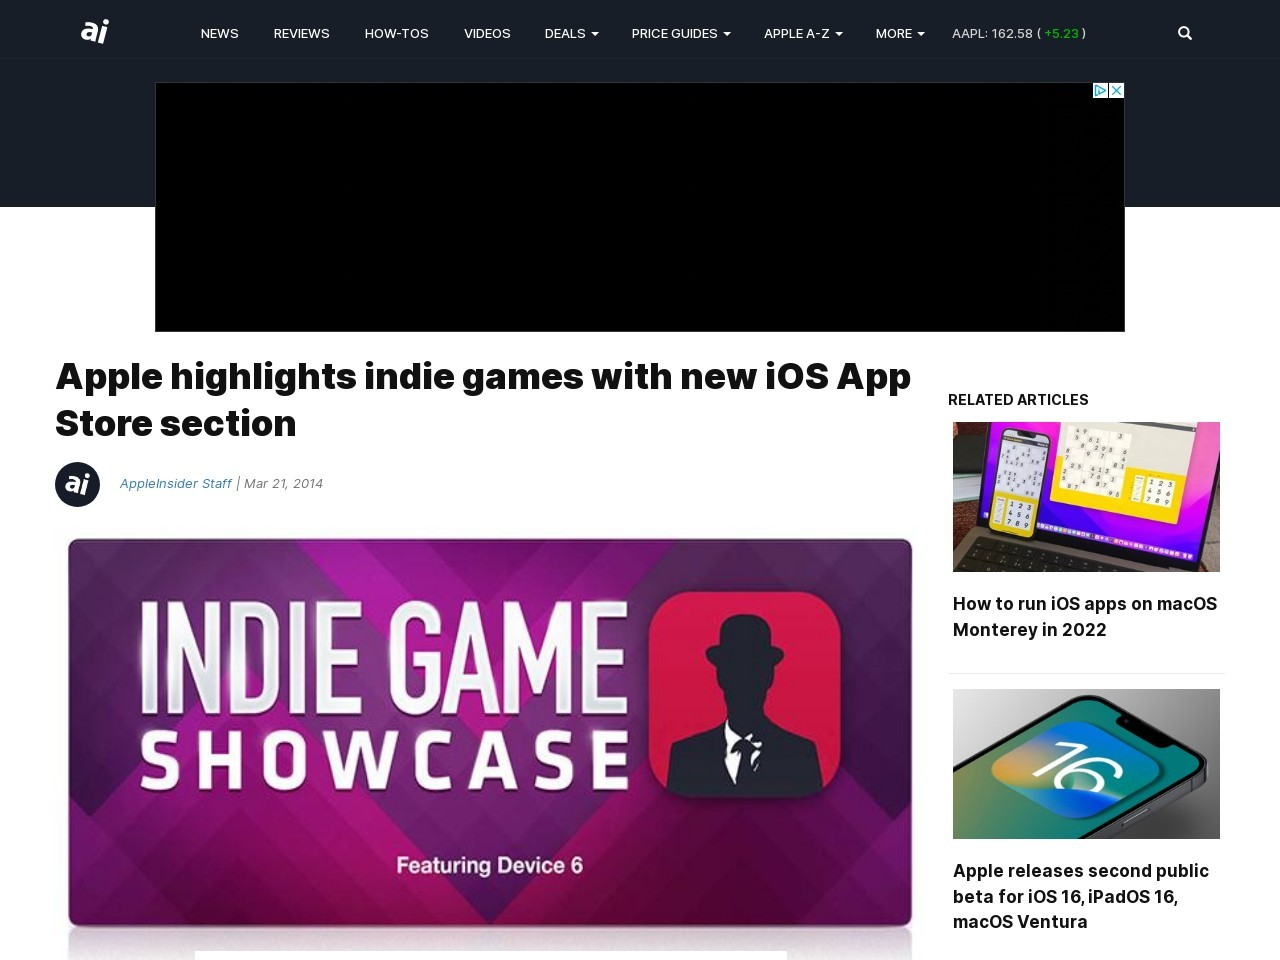 Apple highlights indie games with new iOS App Store section